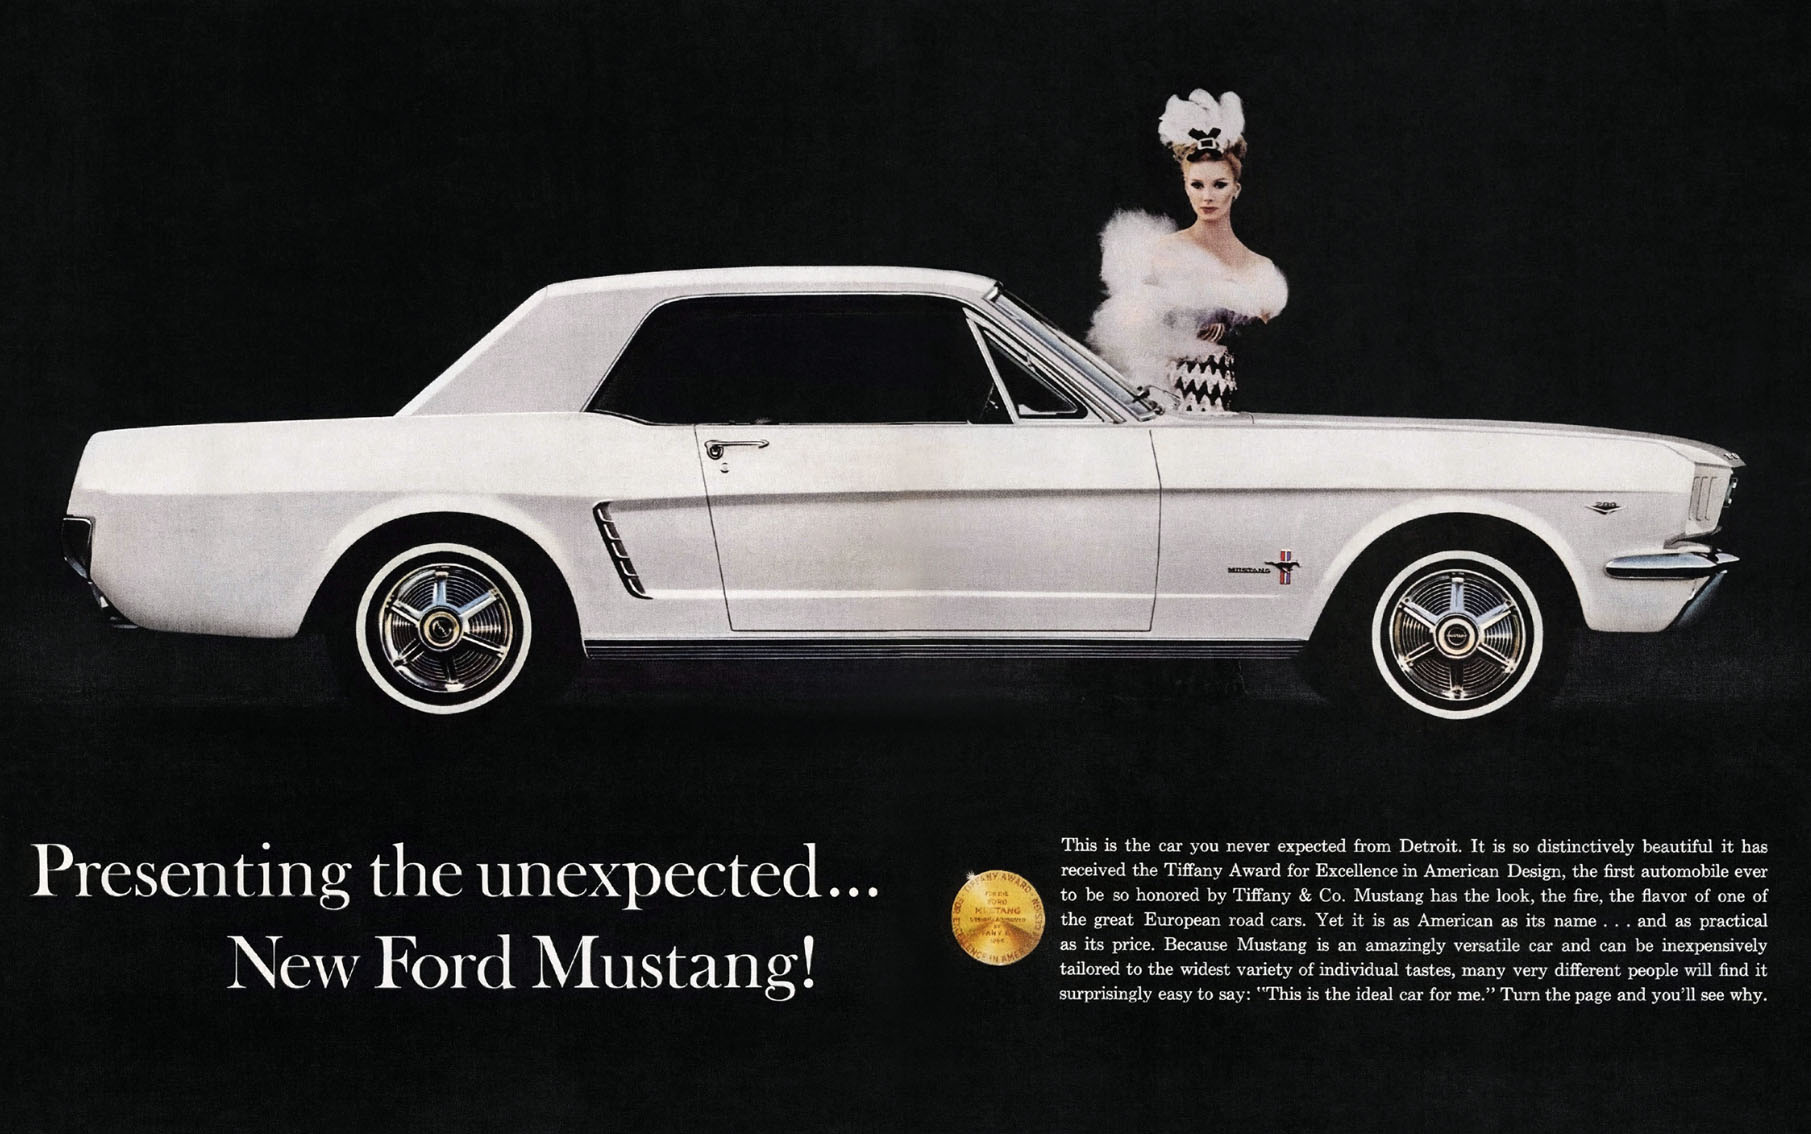 Presenting the unexpected - new Ford Mustang for 1964